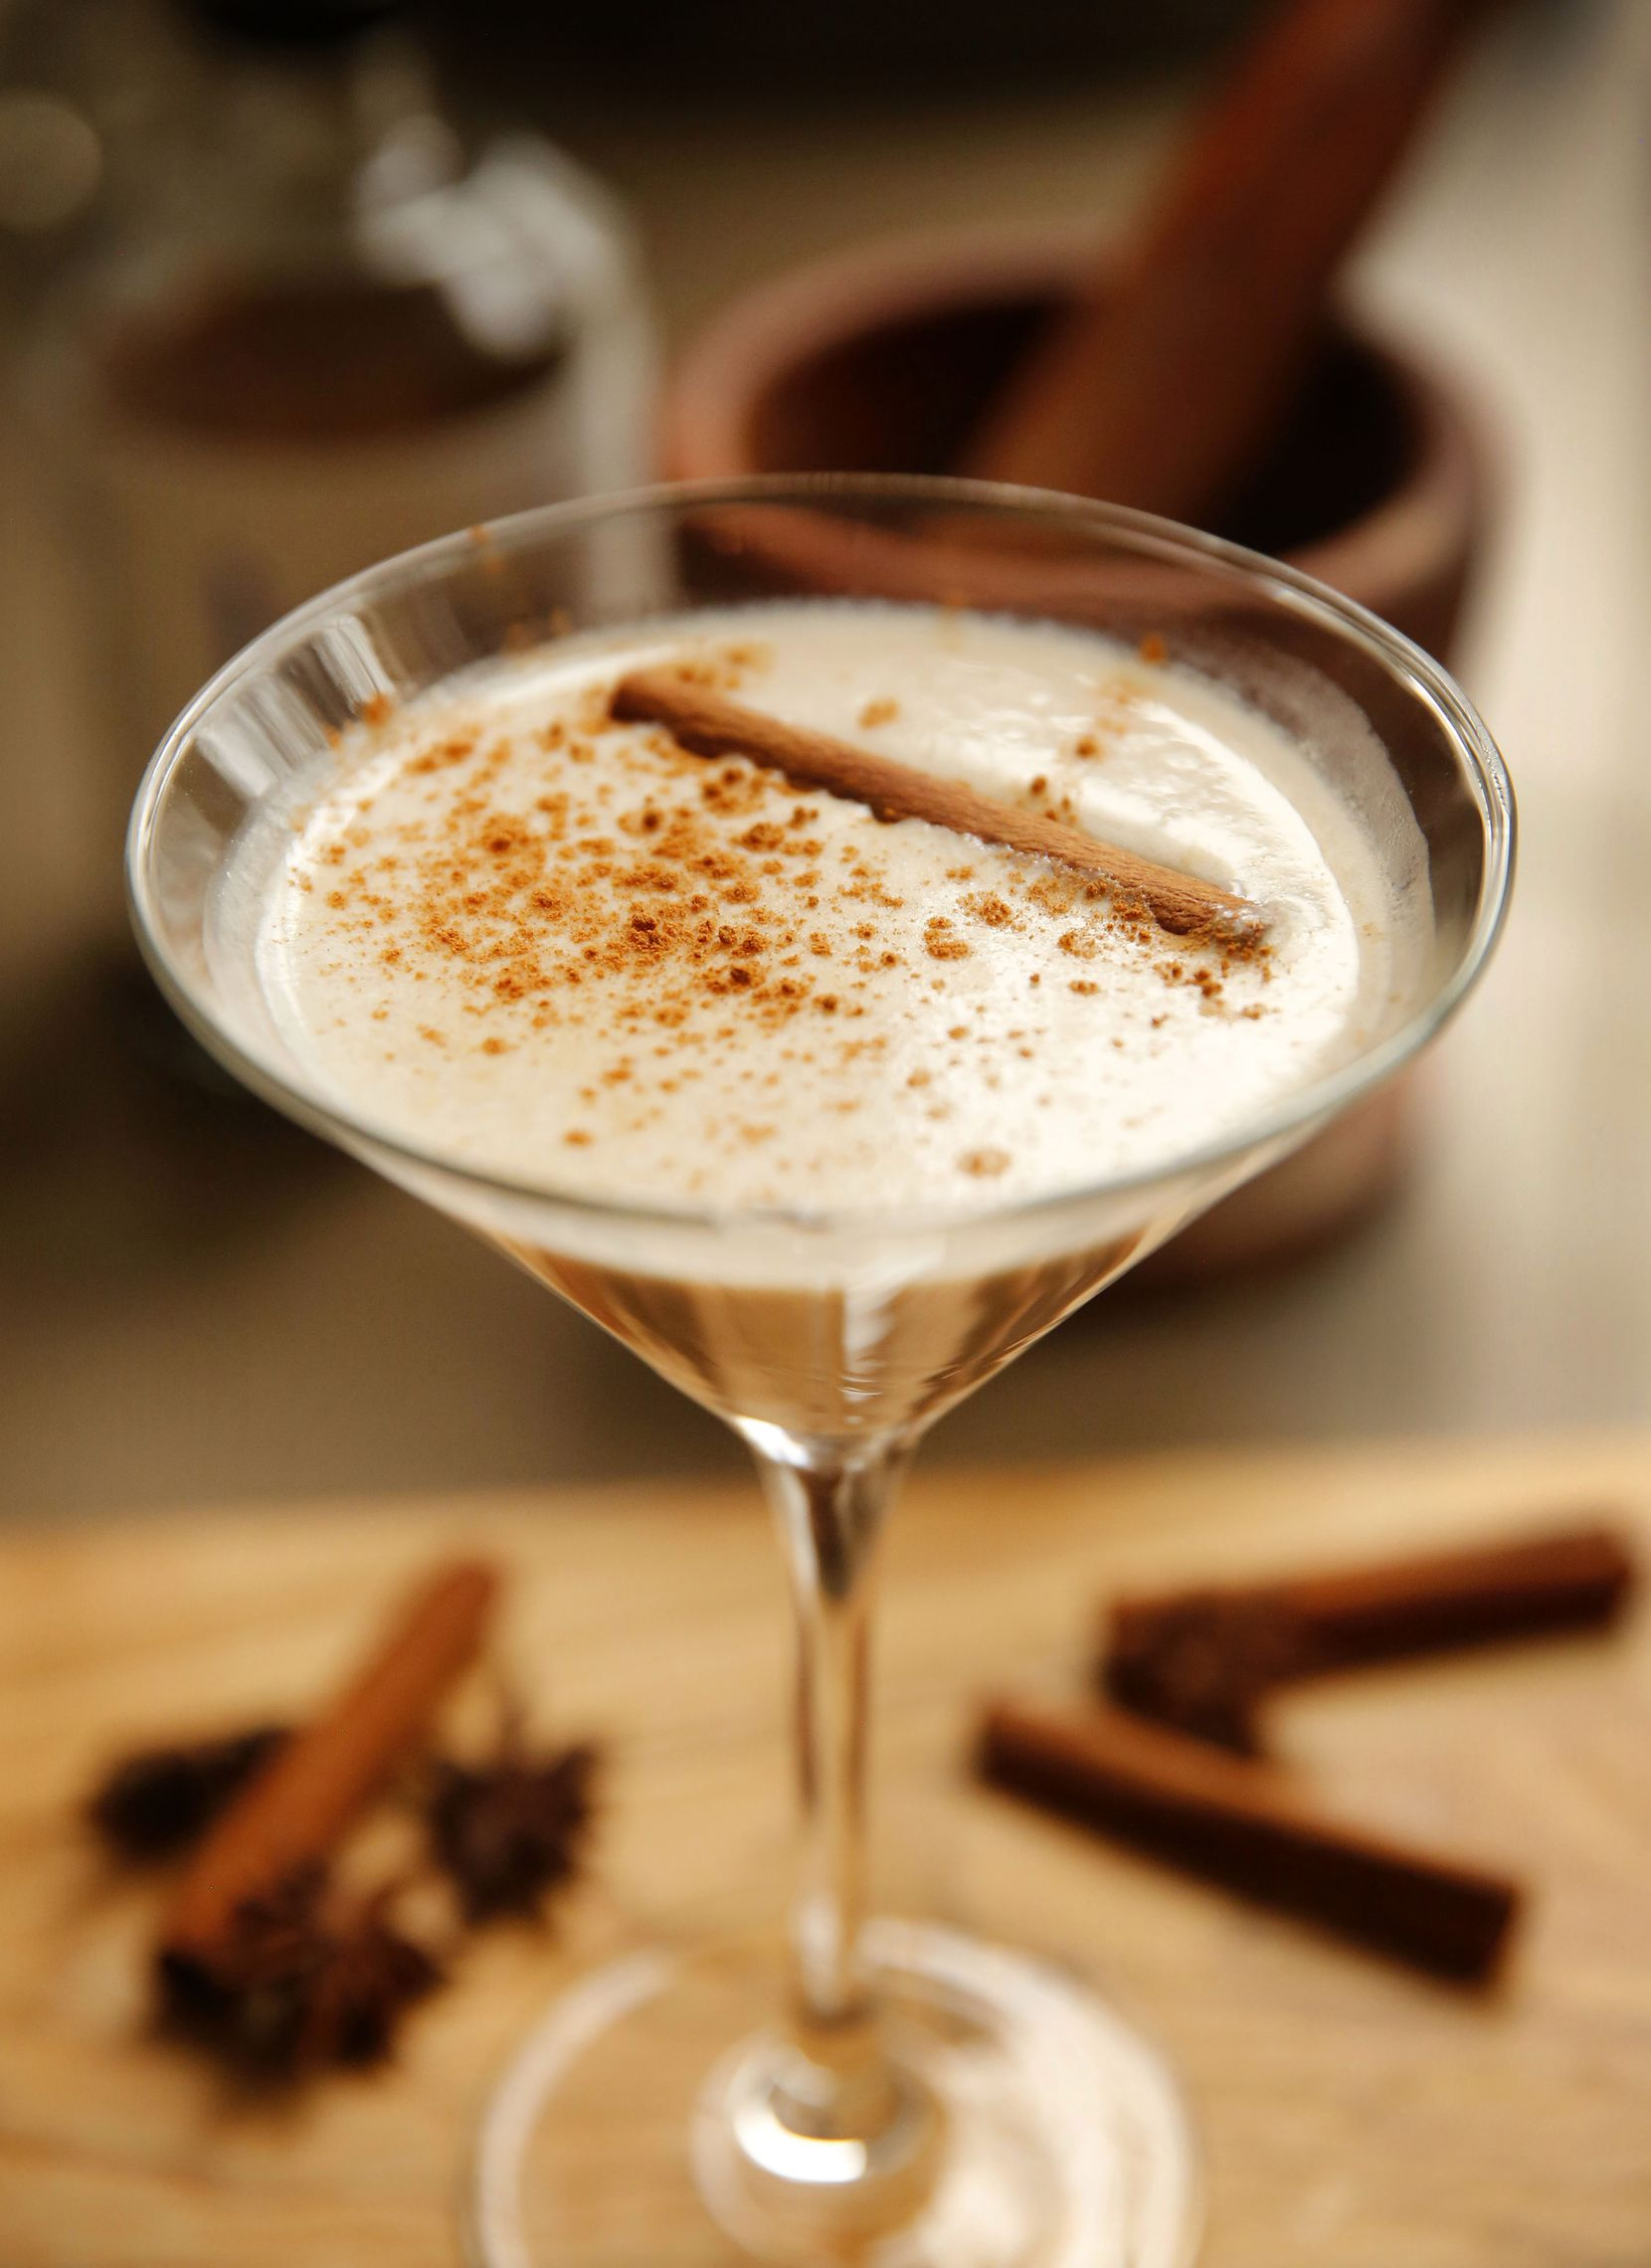 Deric and Brooklynn Cahill plan on selling a dessert martini at their new vegan restaurant with sober bar. The drink is made with Kin Euphorics Dream Light, oat milk, almond butter, ashwagandha root, simple syrup and topped with cinnamon.